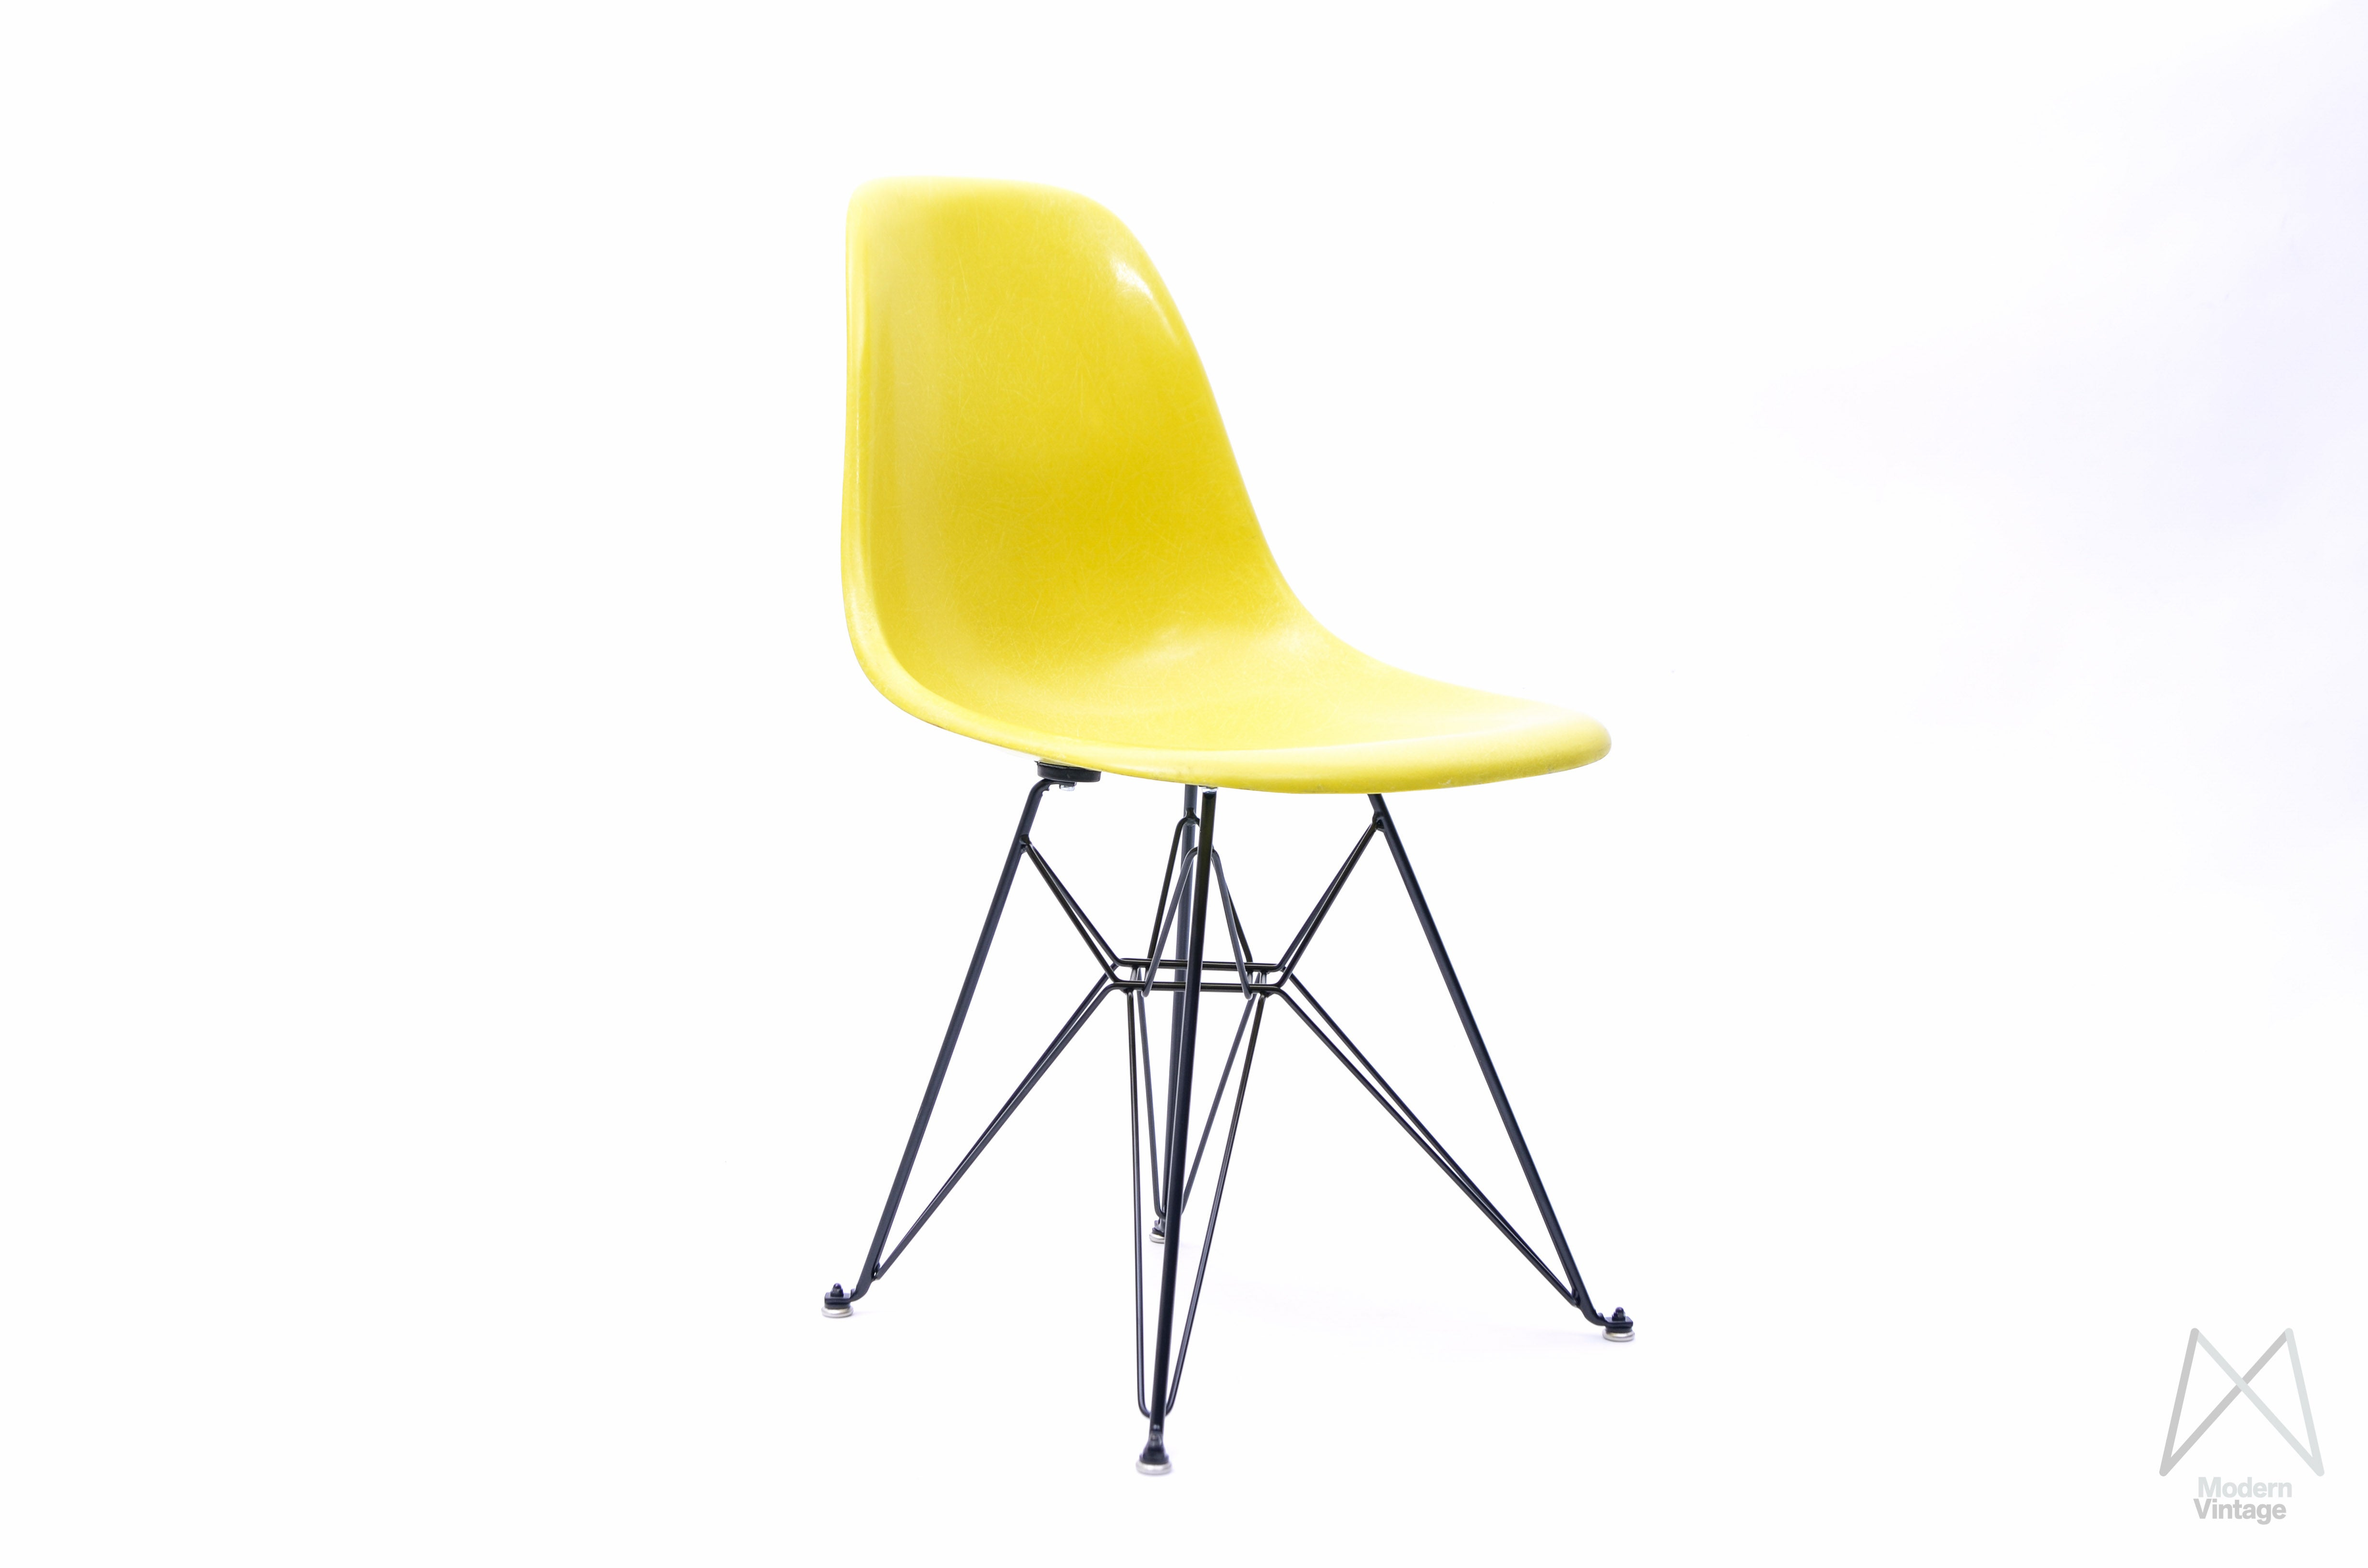 Image Of Eames Herman Miller Fiberglass Shell Chair Canary Yellow ...